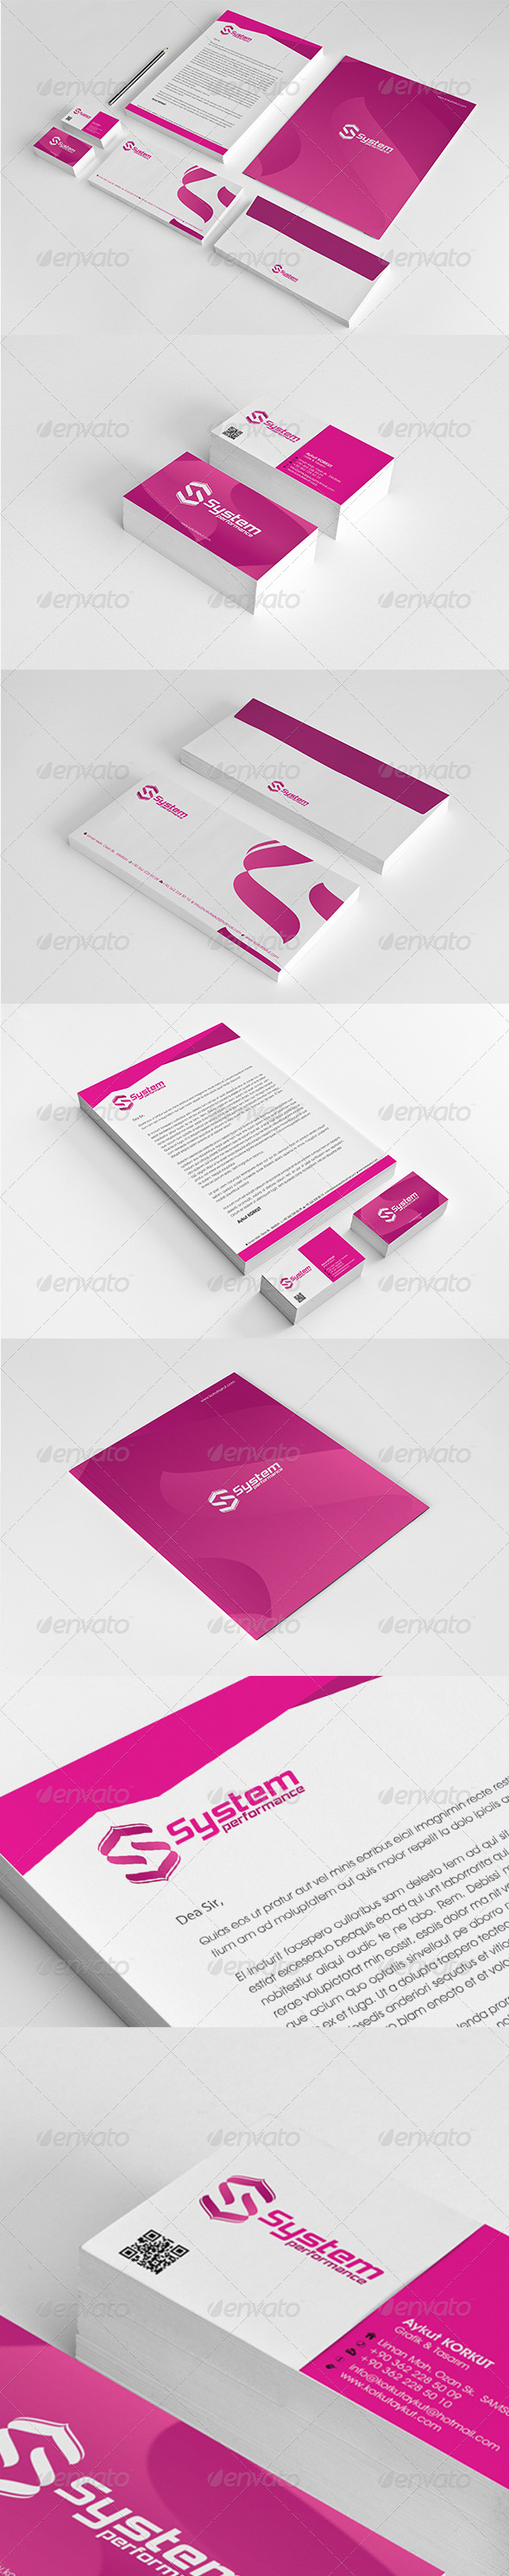 System Performance Corporate Identity Package  - Stationery Print Templates